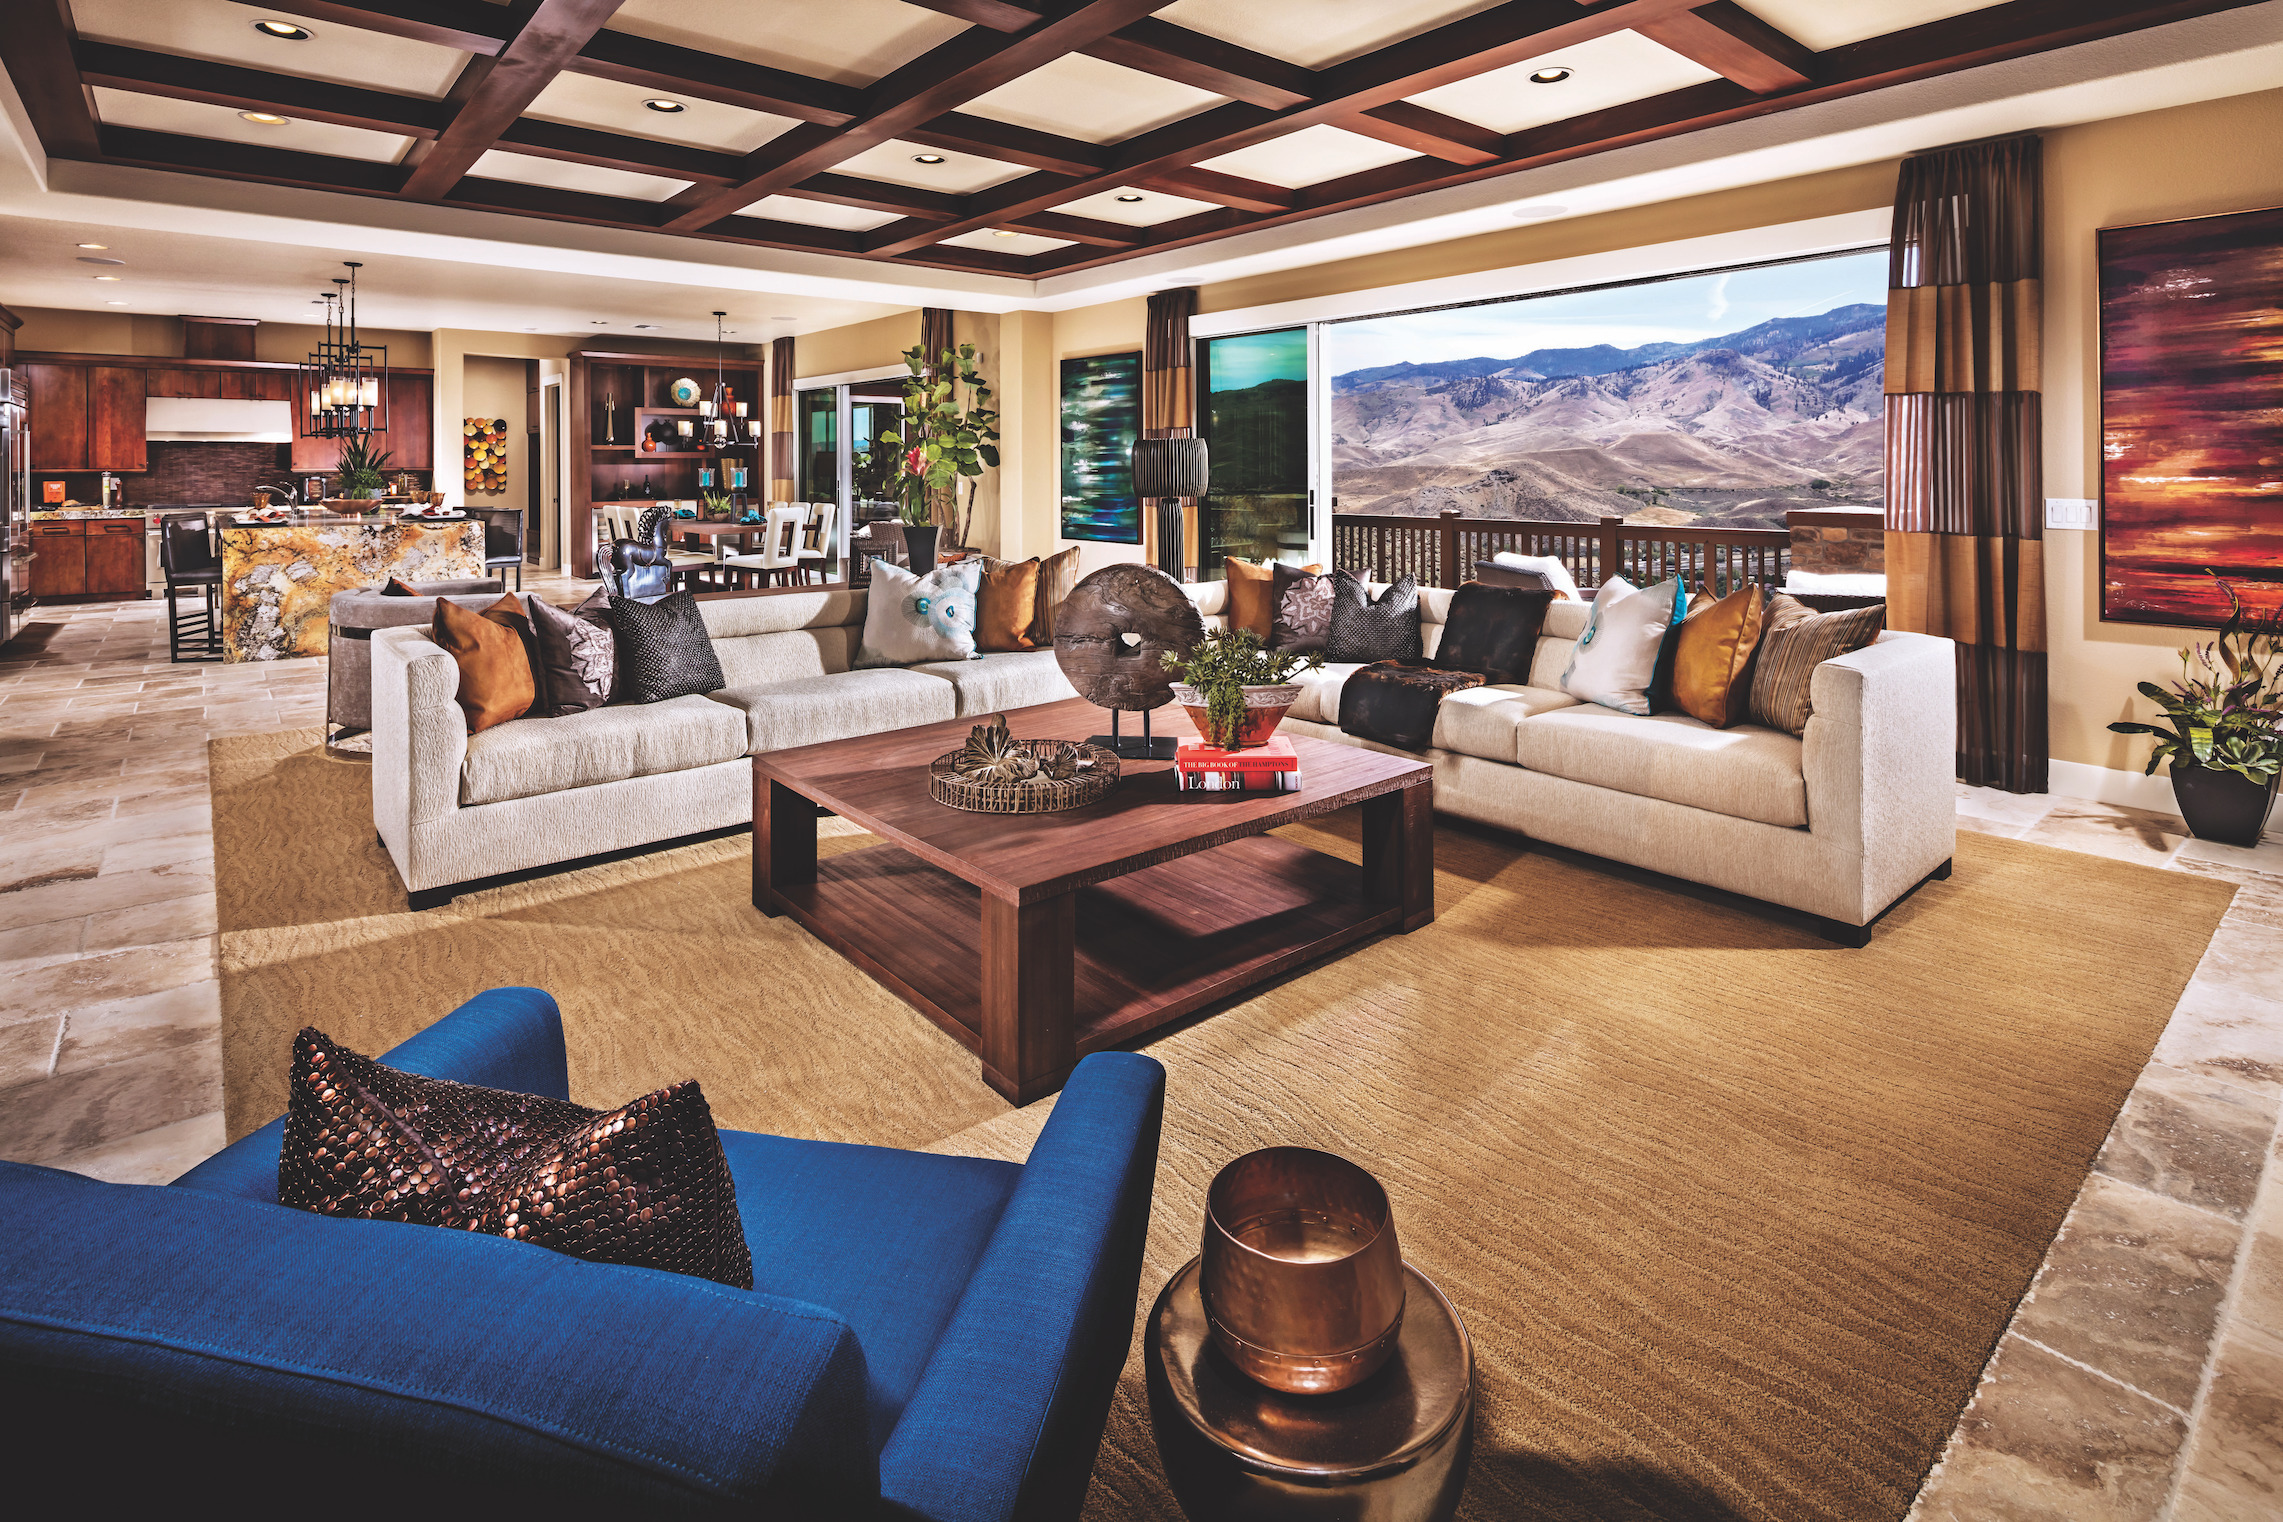 Living Room with an Open Floor Plan & Outdoor Views